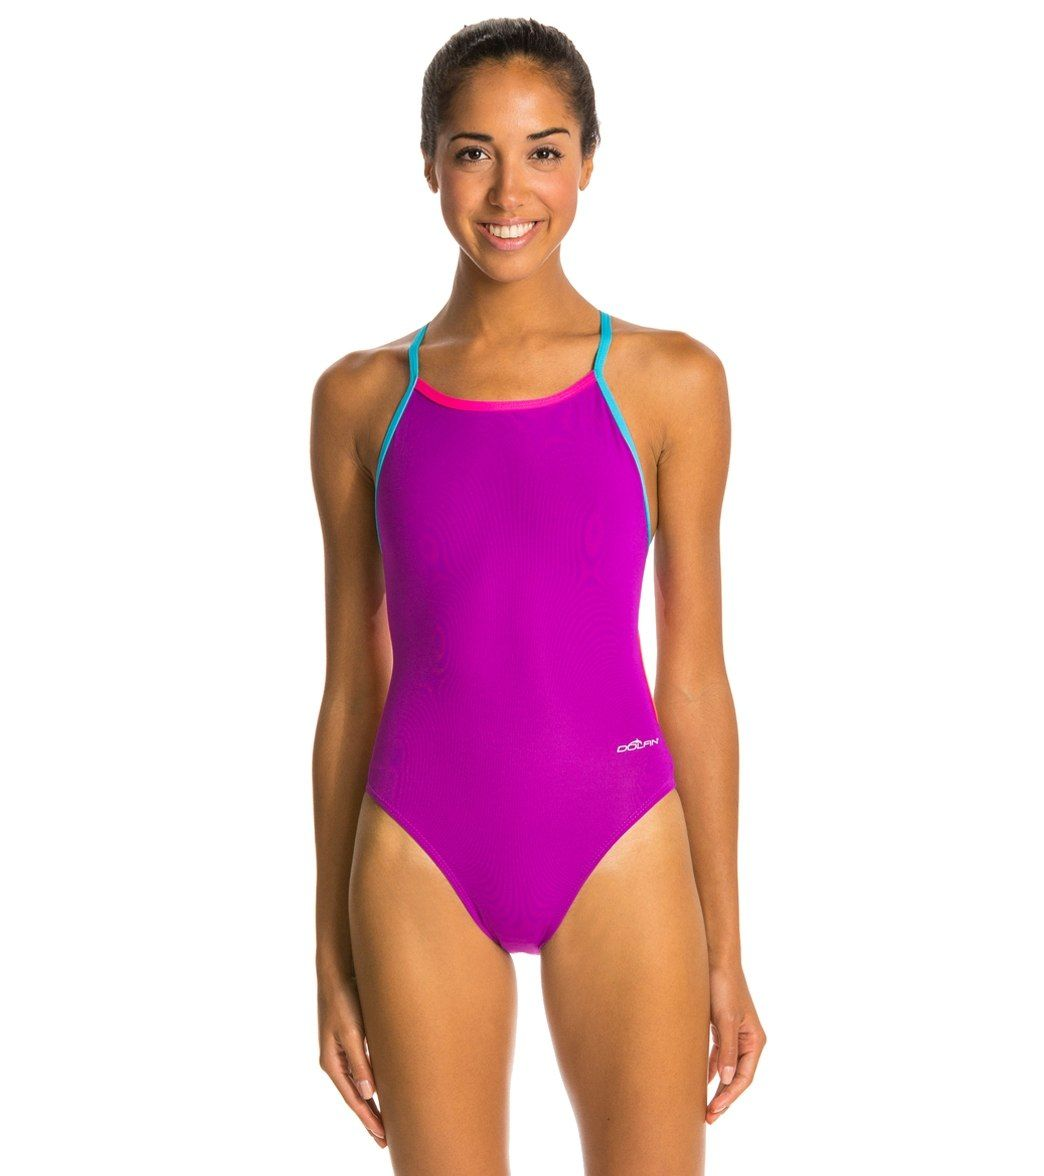 Dolfin Bellas Solids Butterfly Back One Piece Swimsuit At Swimoutlet Com Free Shipping One Piece Swimsuit One Piece Swimsuits